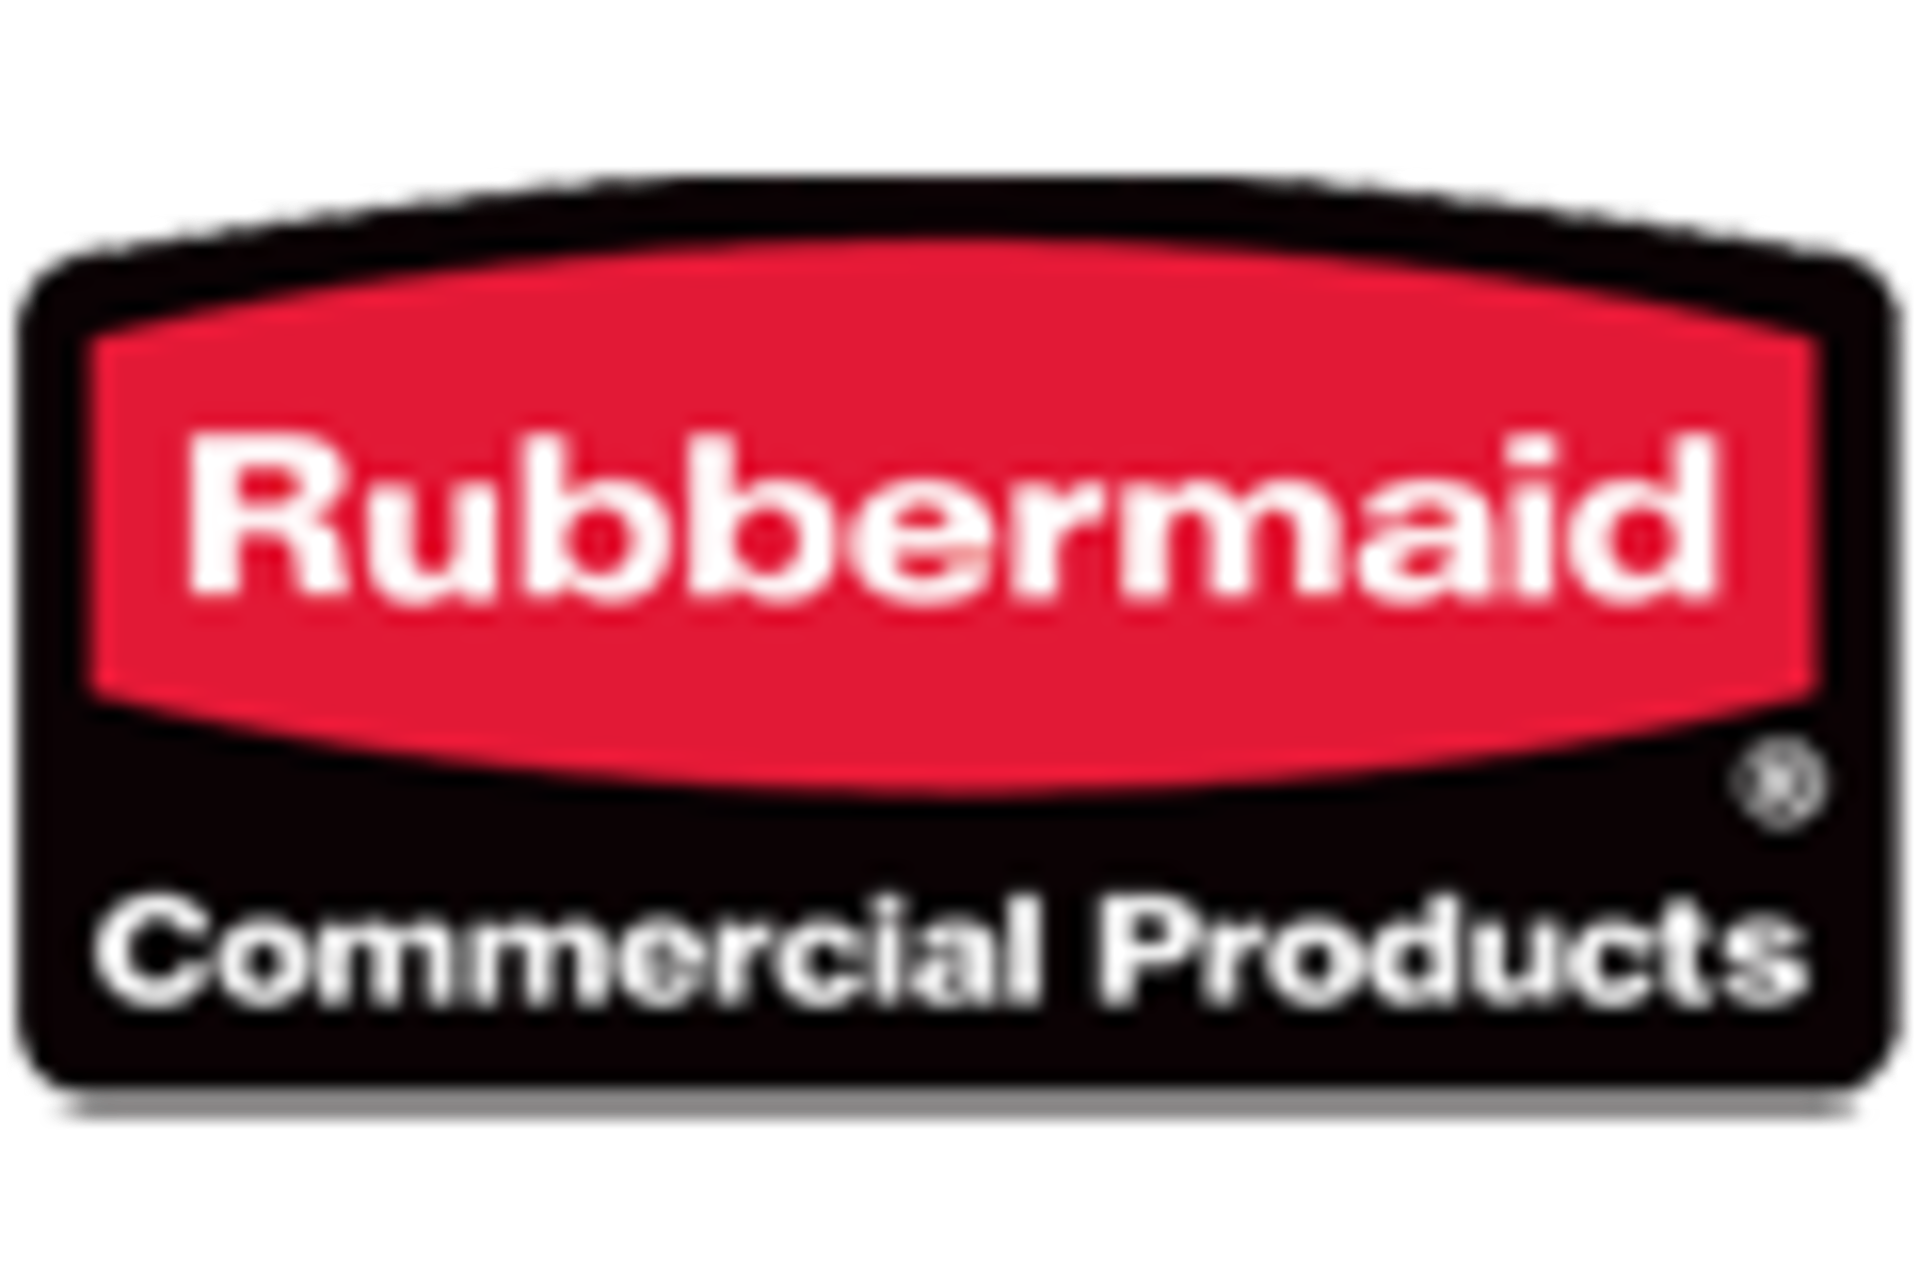 Lot 0 - Rubbermaid Commercial Products - Featured Items